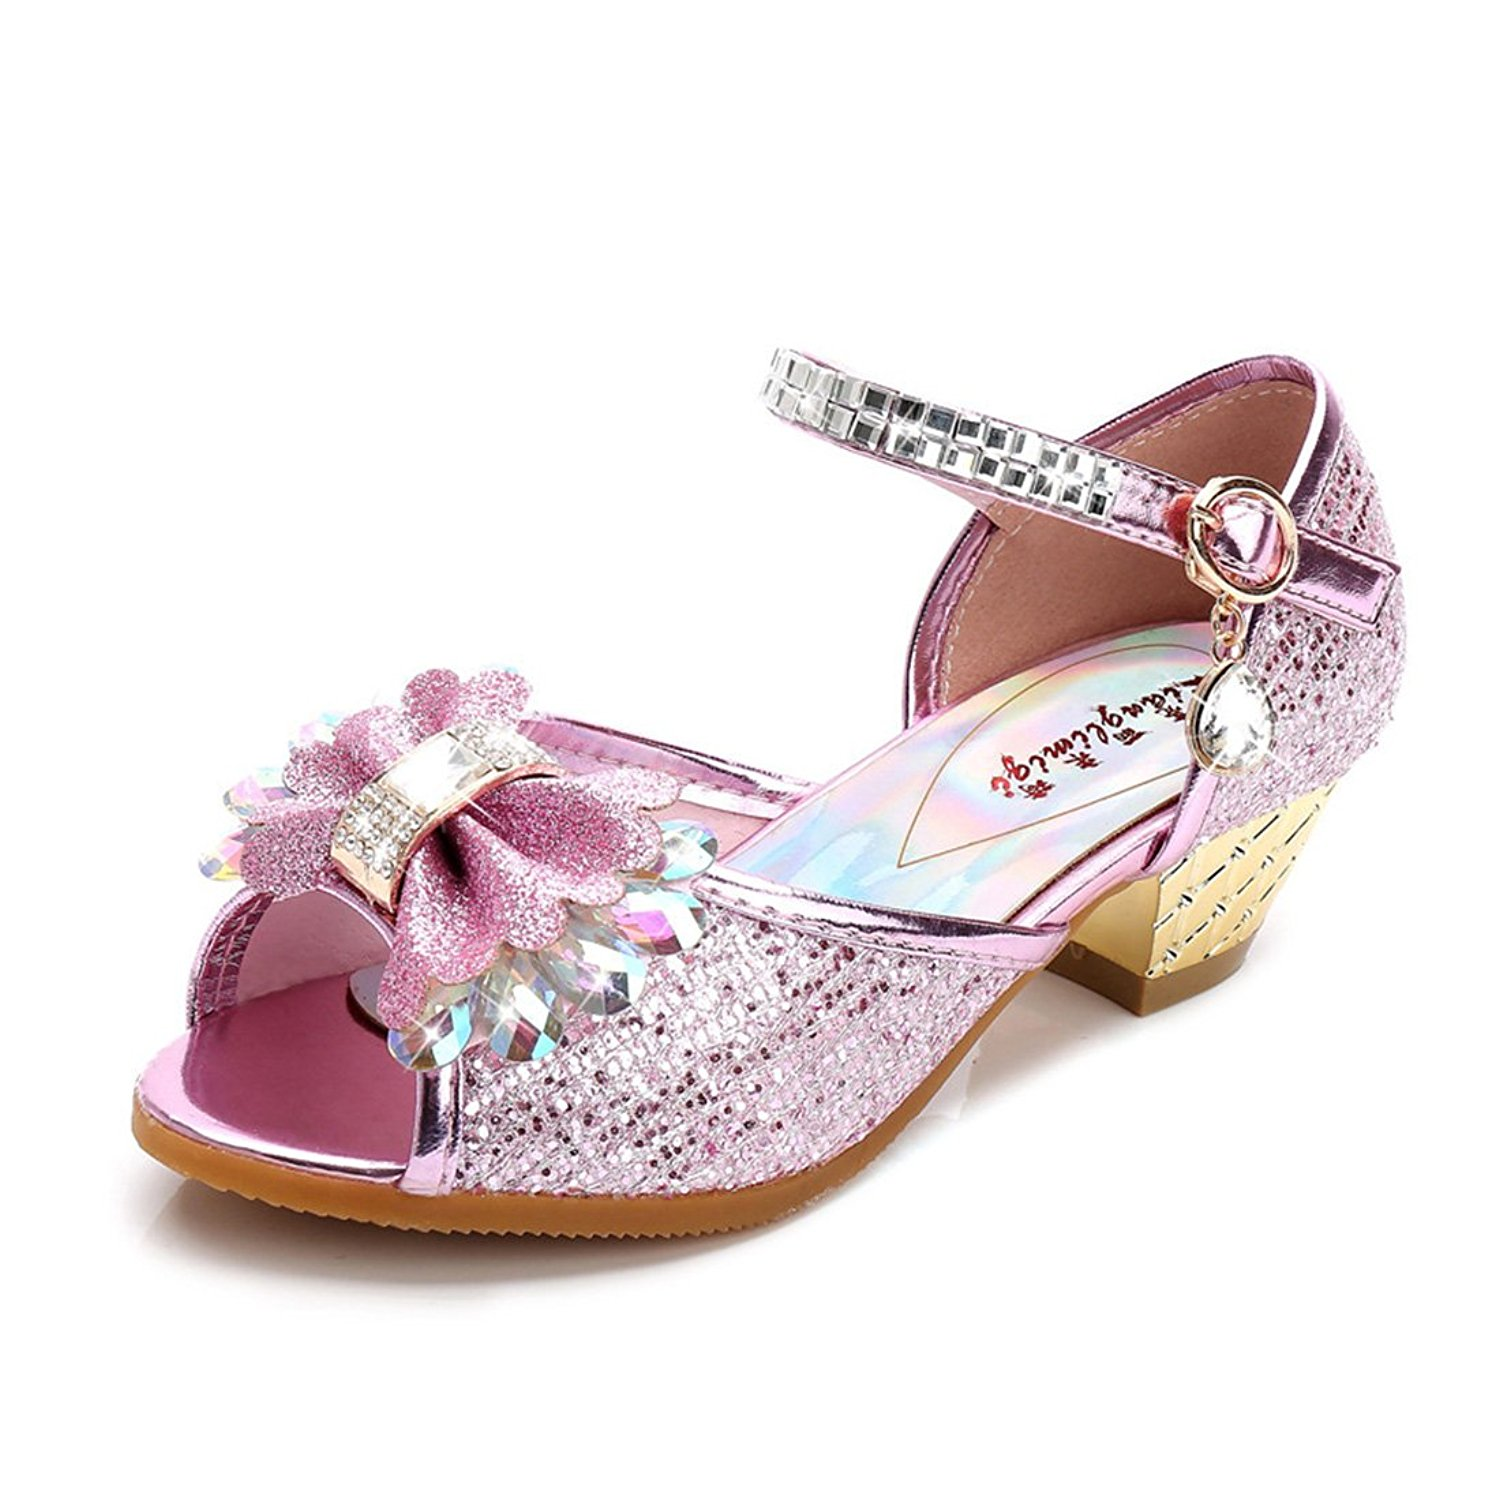 YIBLBOX Girls Kids Toddler Dress up Wedding Cosplay Princess Shoes Sparkling Mary Jane Low Heel Shoes